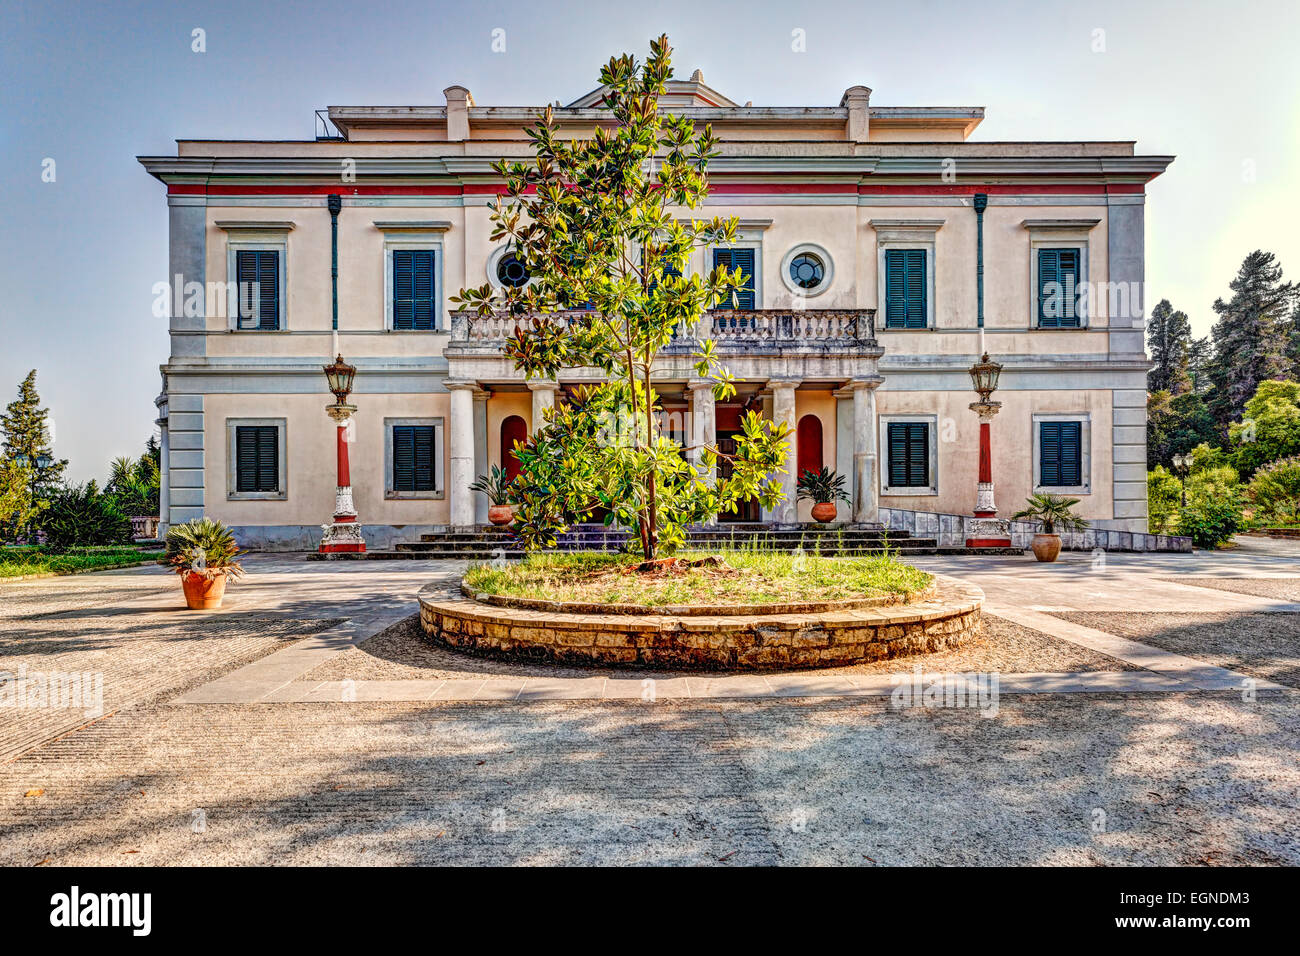 Mon Repos is a villa on the island of Corfu, Greece. - Stock Image